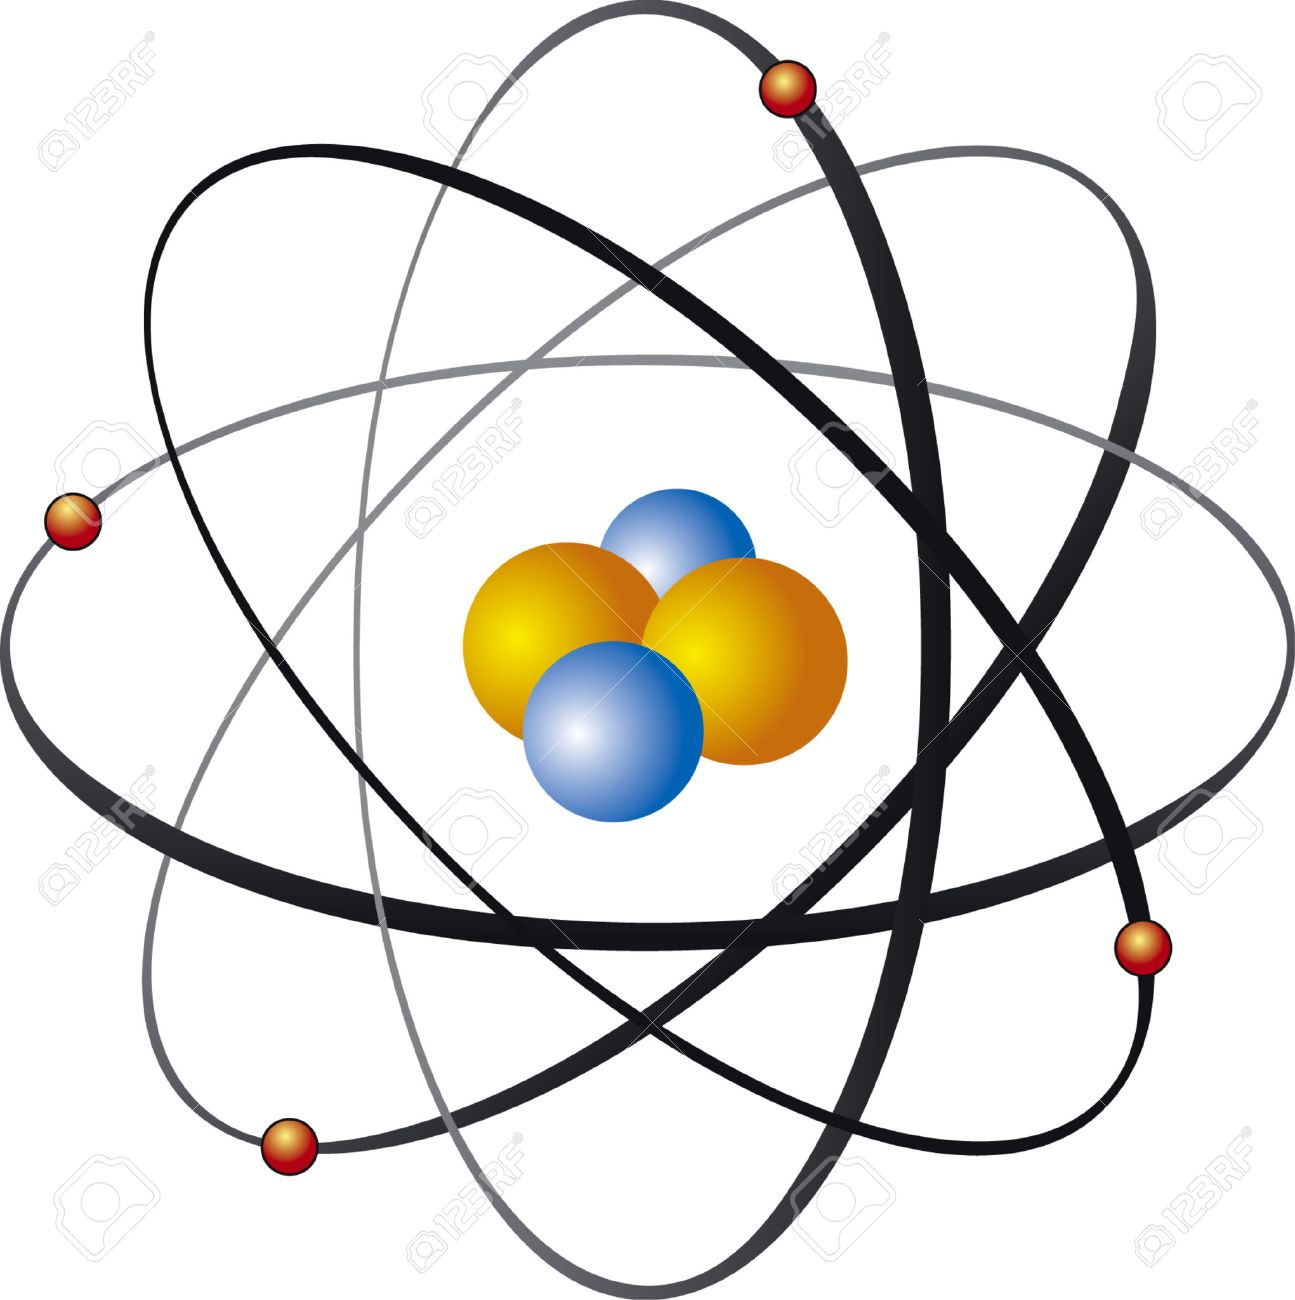 1295x1300 Vector Illustration Of Atom Nucleus Royalty Free Cliparts, Vectors